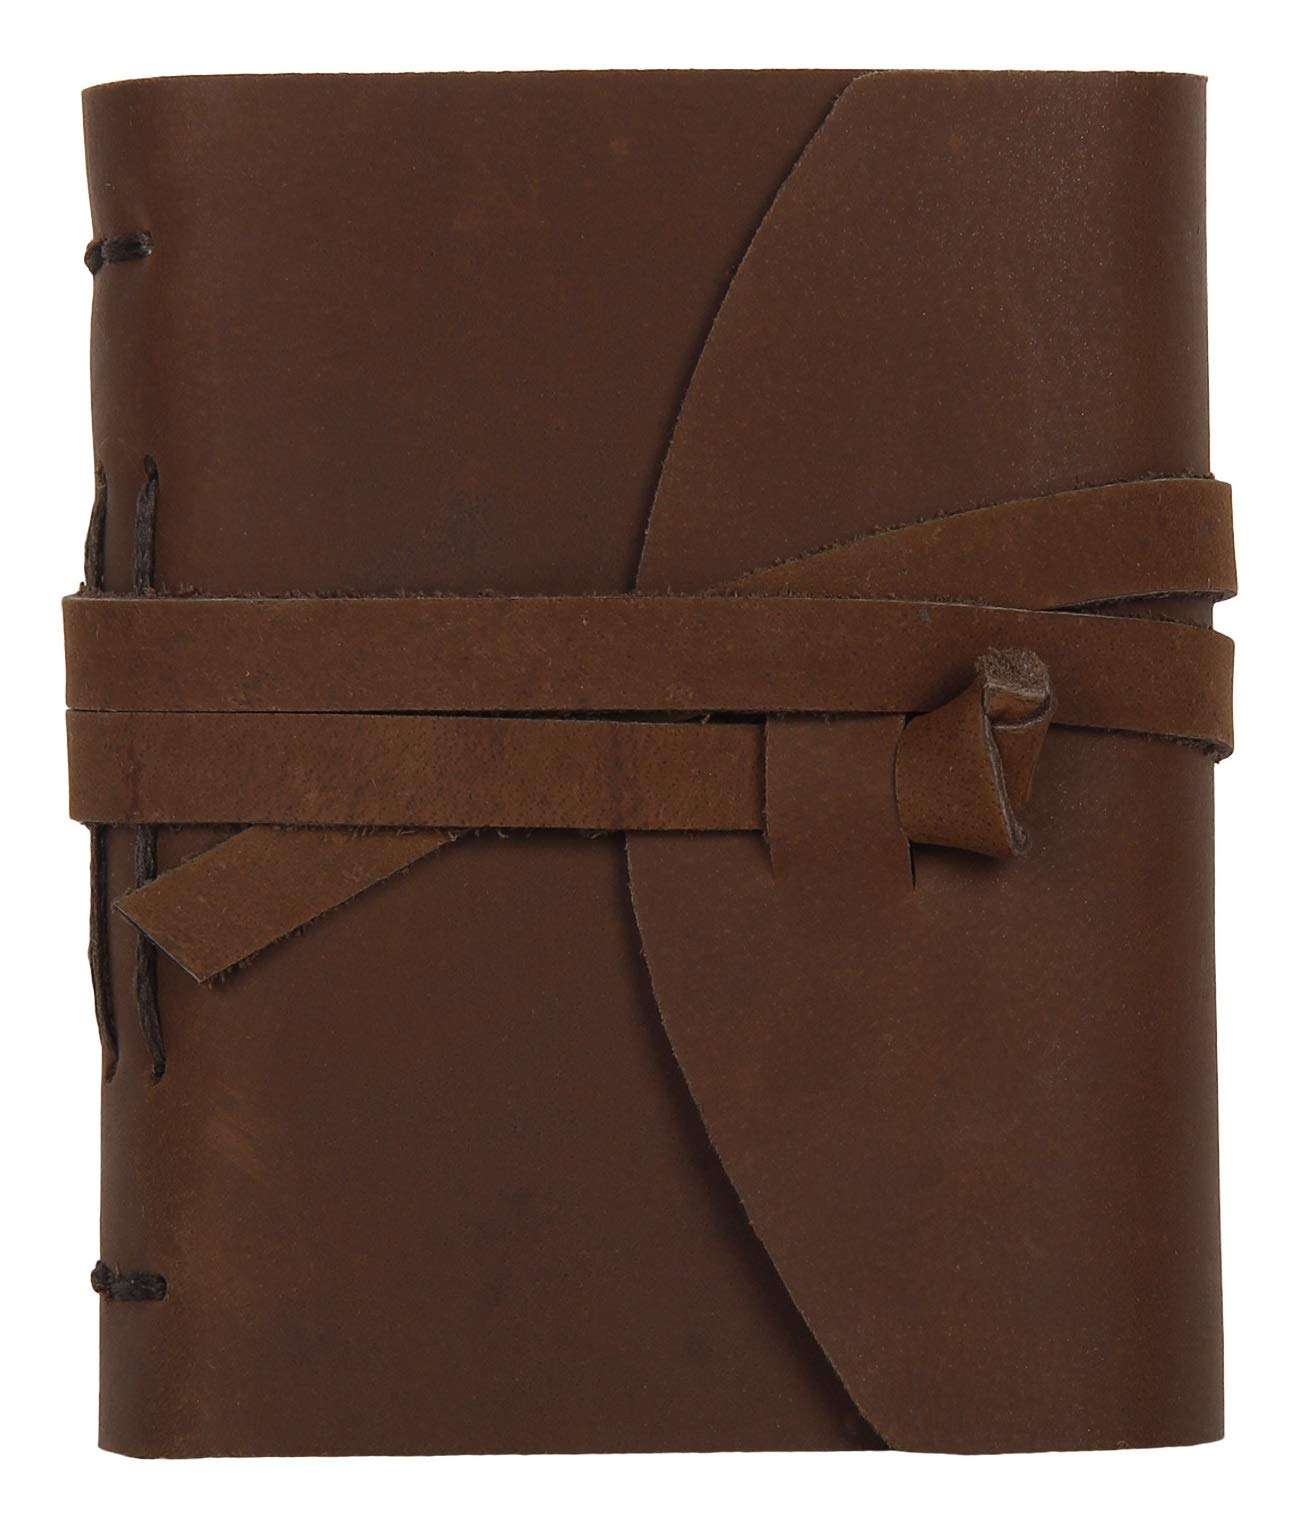 Leather Notebook Journal Diary - College Planner & Field Notes Notebook for Men & Women by Rustic Town  Price: £14.99